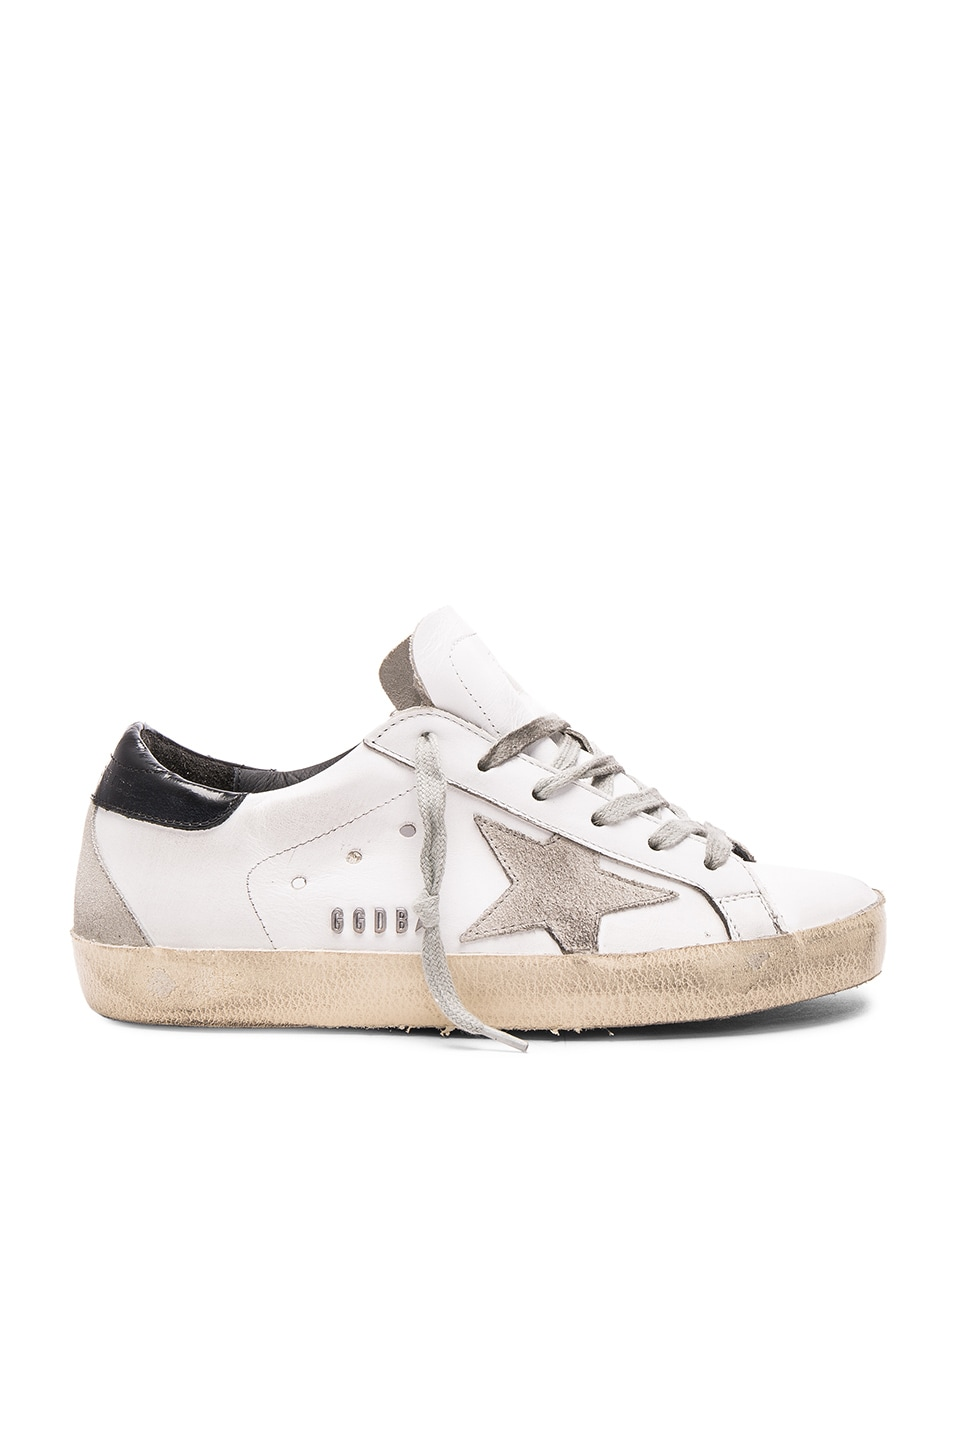 Image 1 of Golden Goose Leather Superstar Low Sneakers in White, Black & Cream Metal